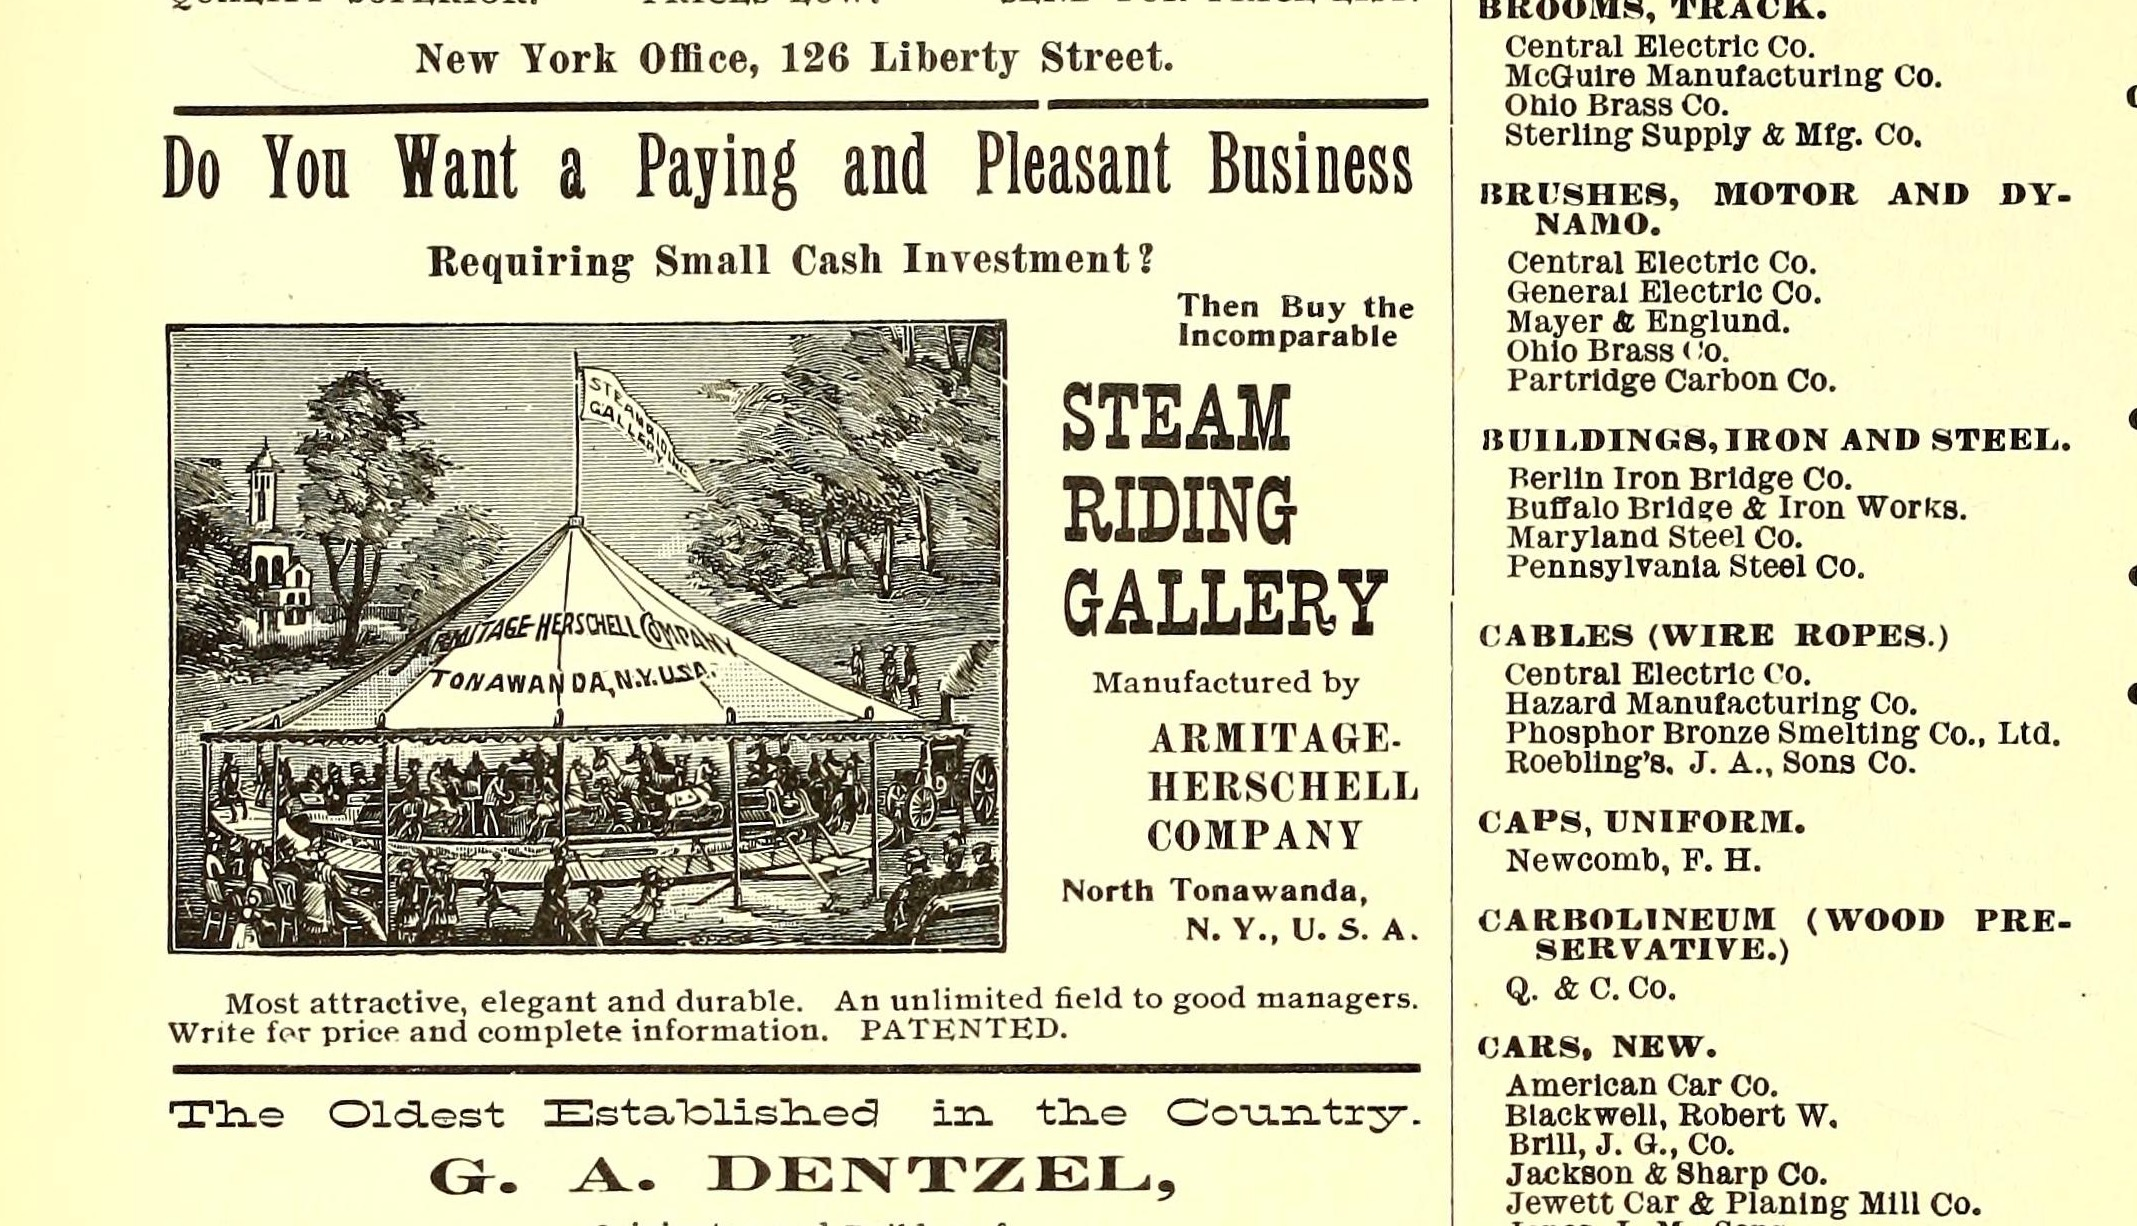 Armitage Herschell Steam Riding Gallery, illustrated ad (Street Railway Journal, 1898 PD).png